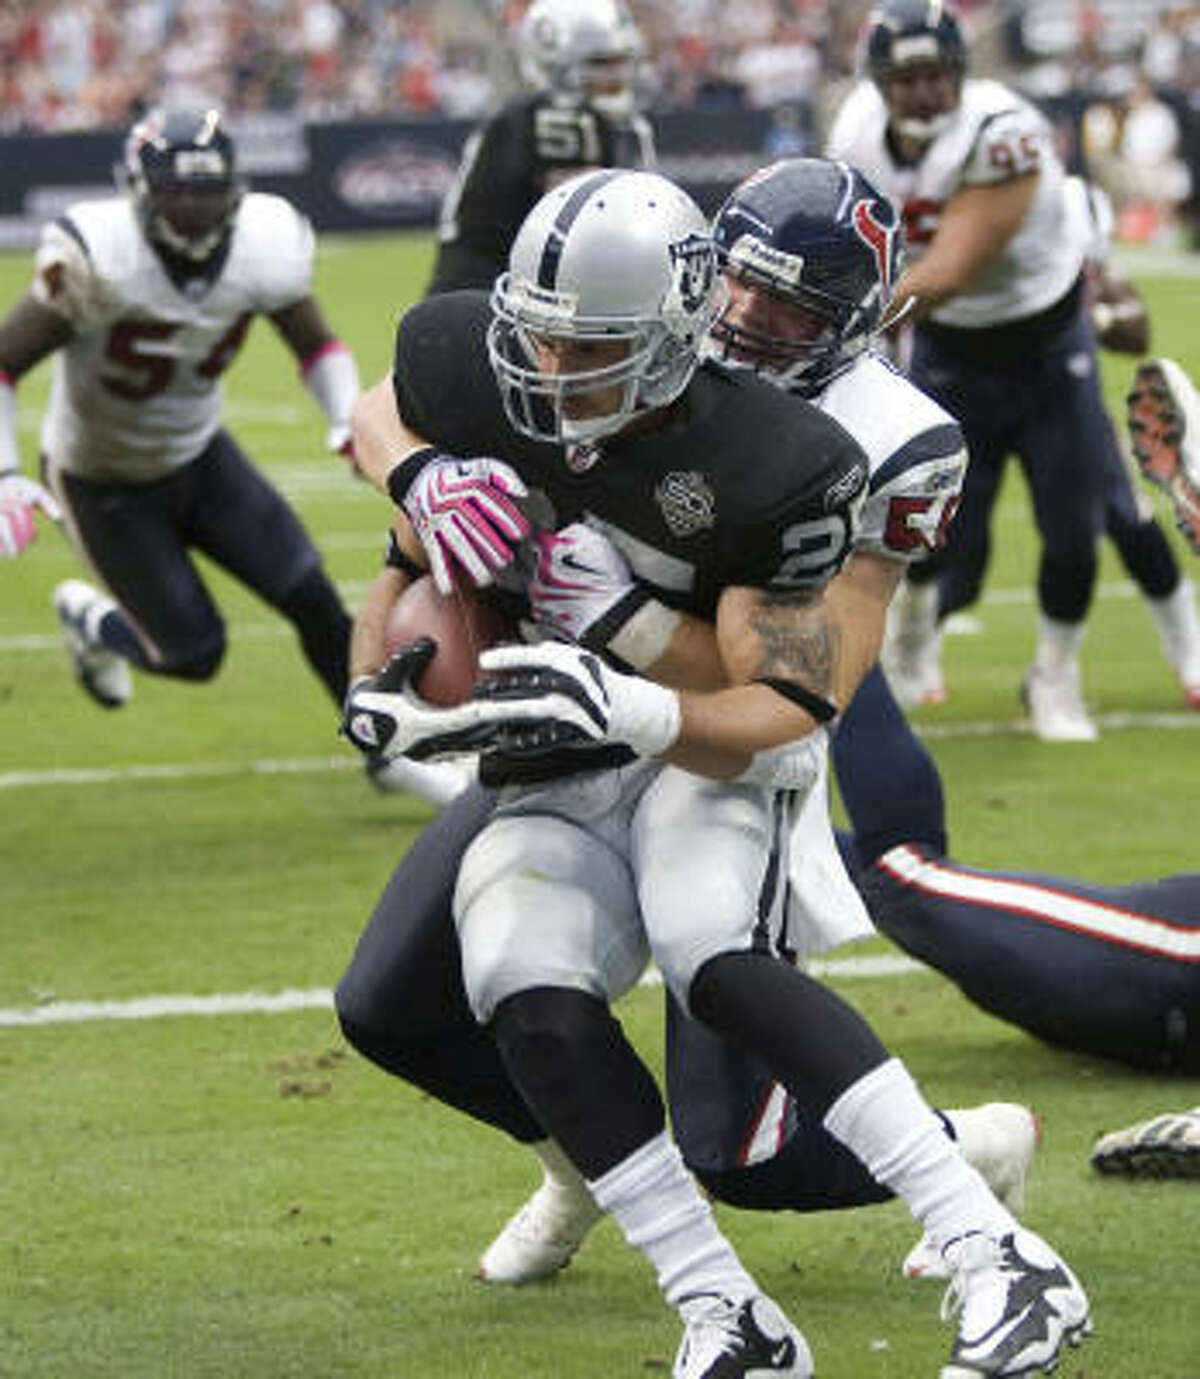 Rookie linebacker Brian Cushing's intensity has made an impact for the Texans.